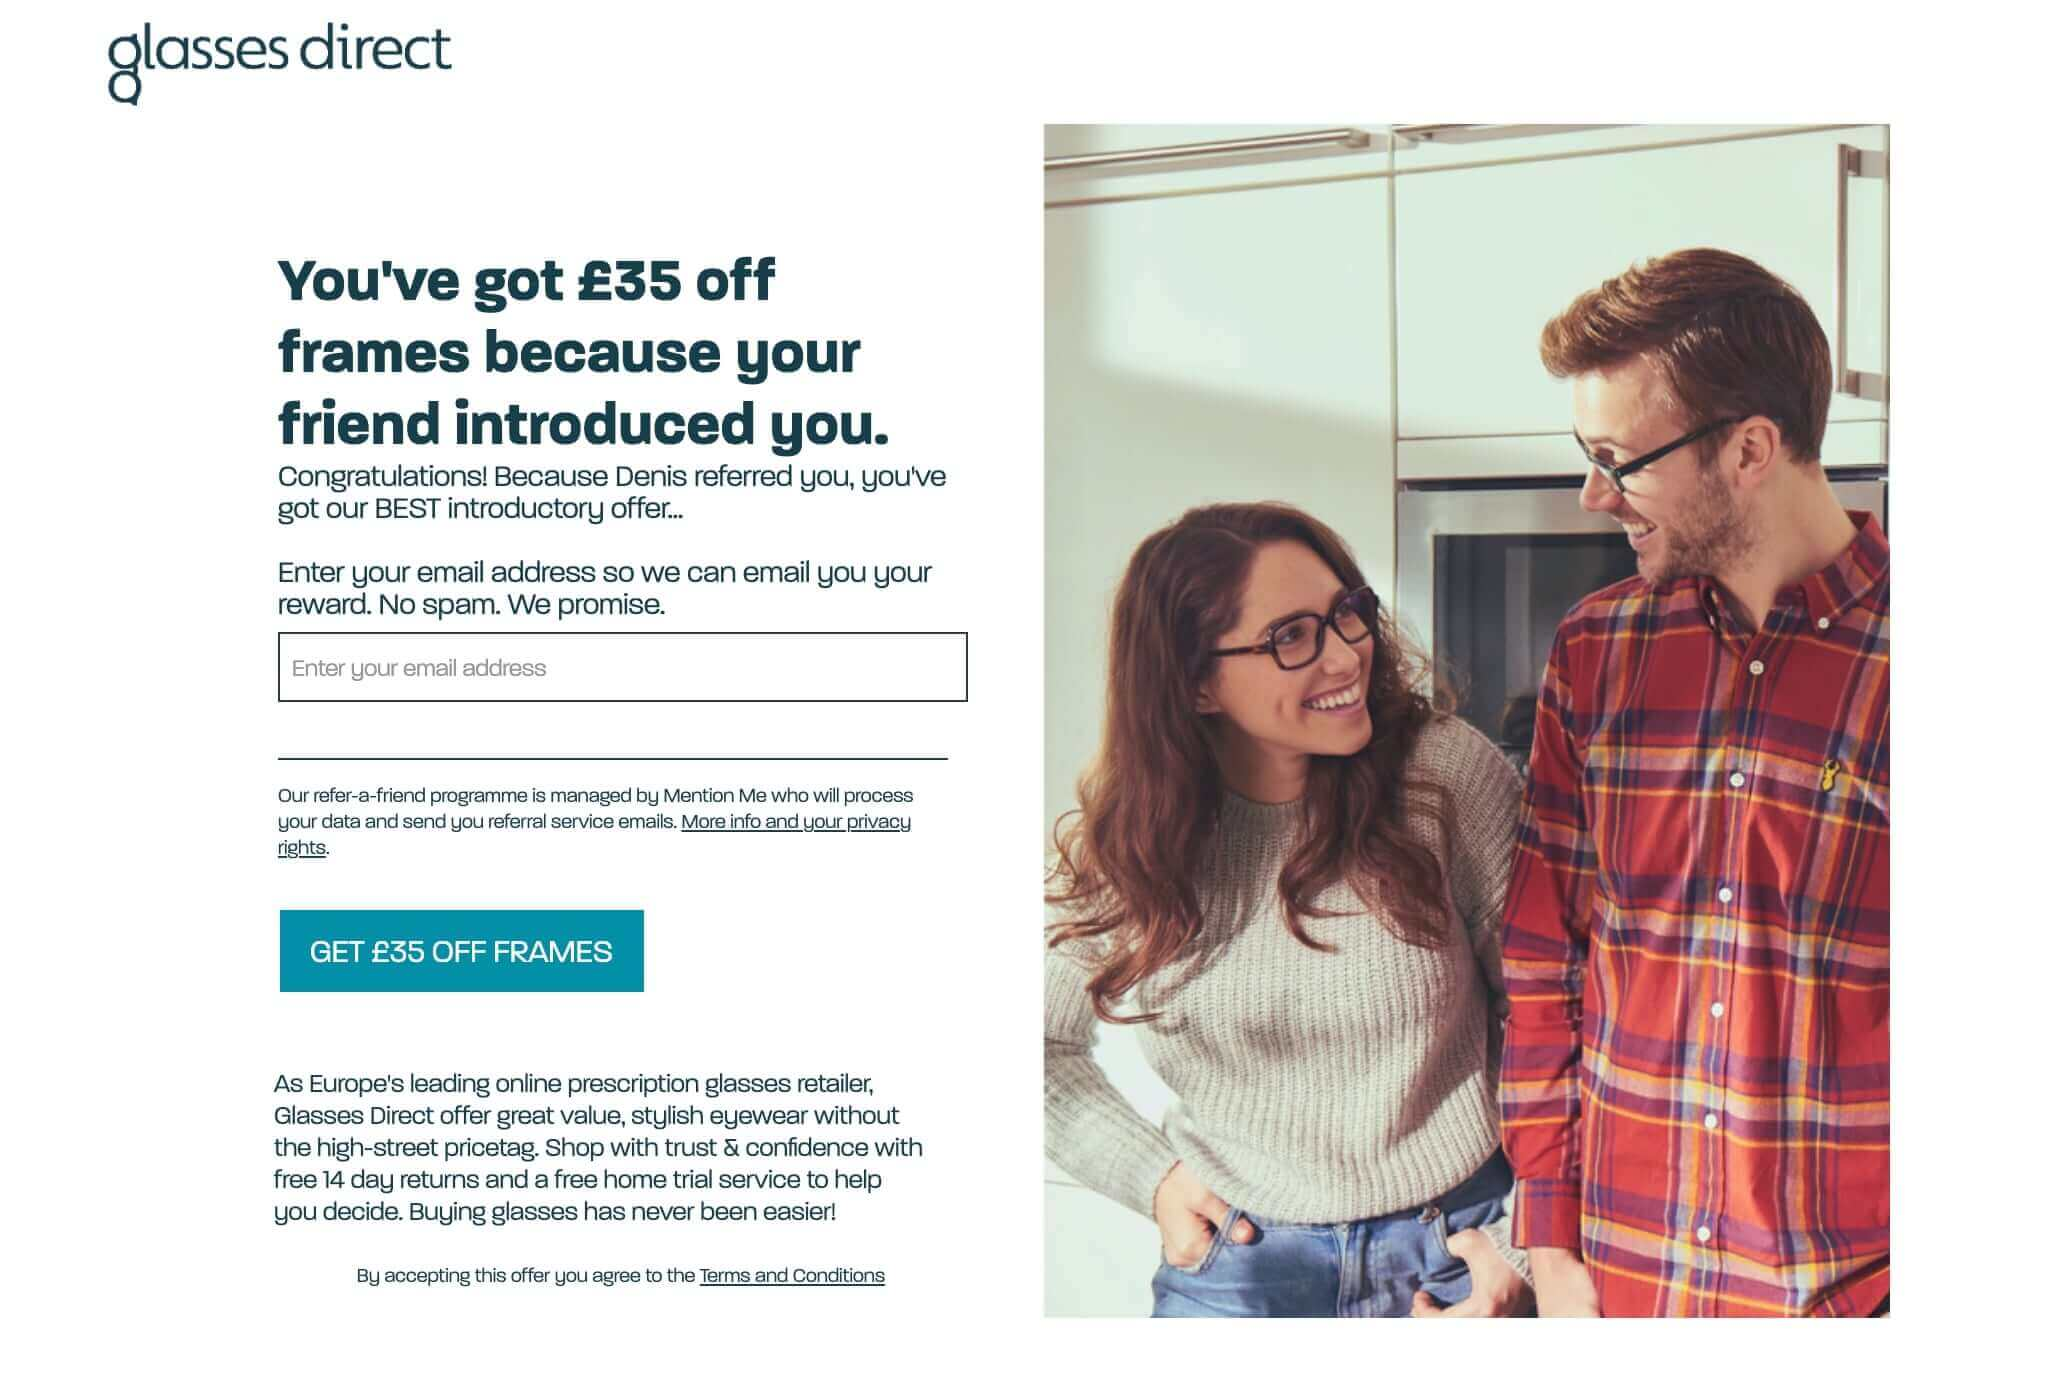 Glasses direct referral invitation for 35 GBP off frames - Glasses direct refer a friend code